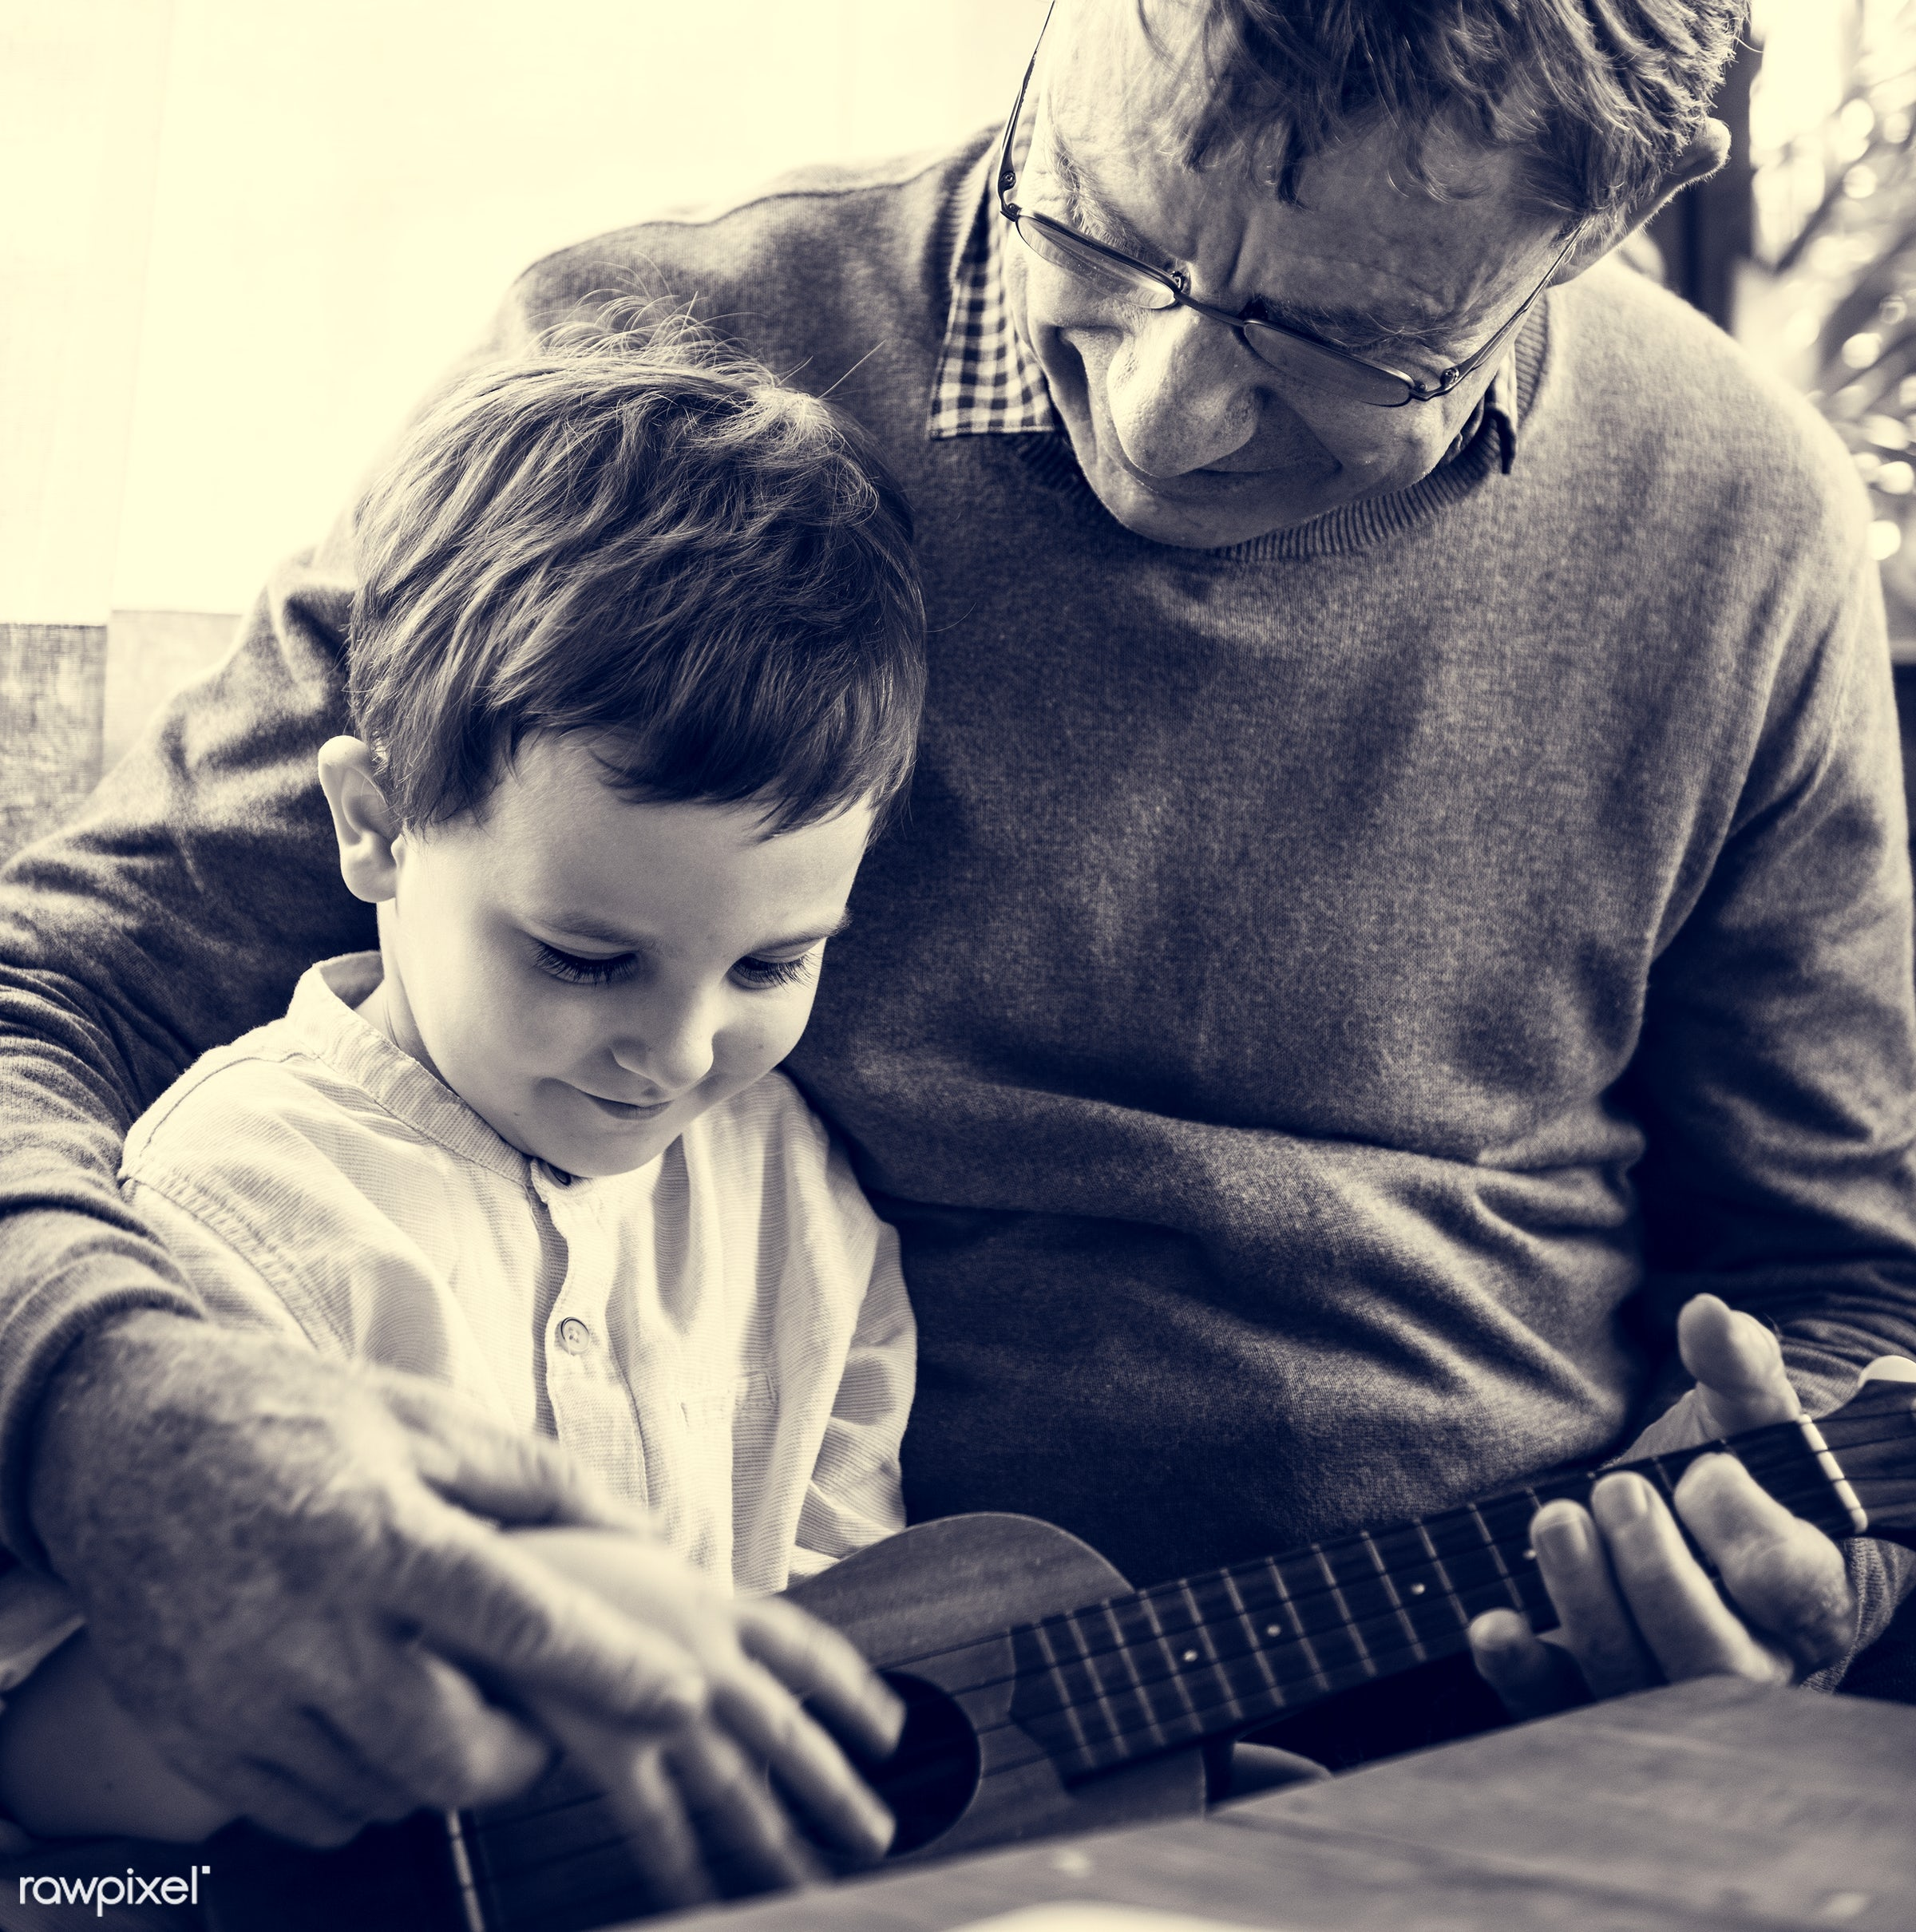 ukelele, song, old, perform, positivity, love, playing, break, genuine, performance, family, happy, musician, smile,...